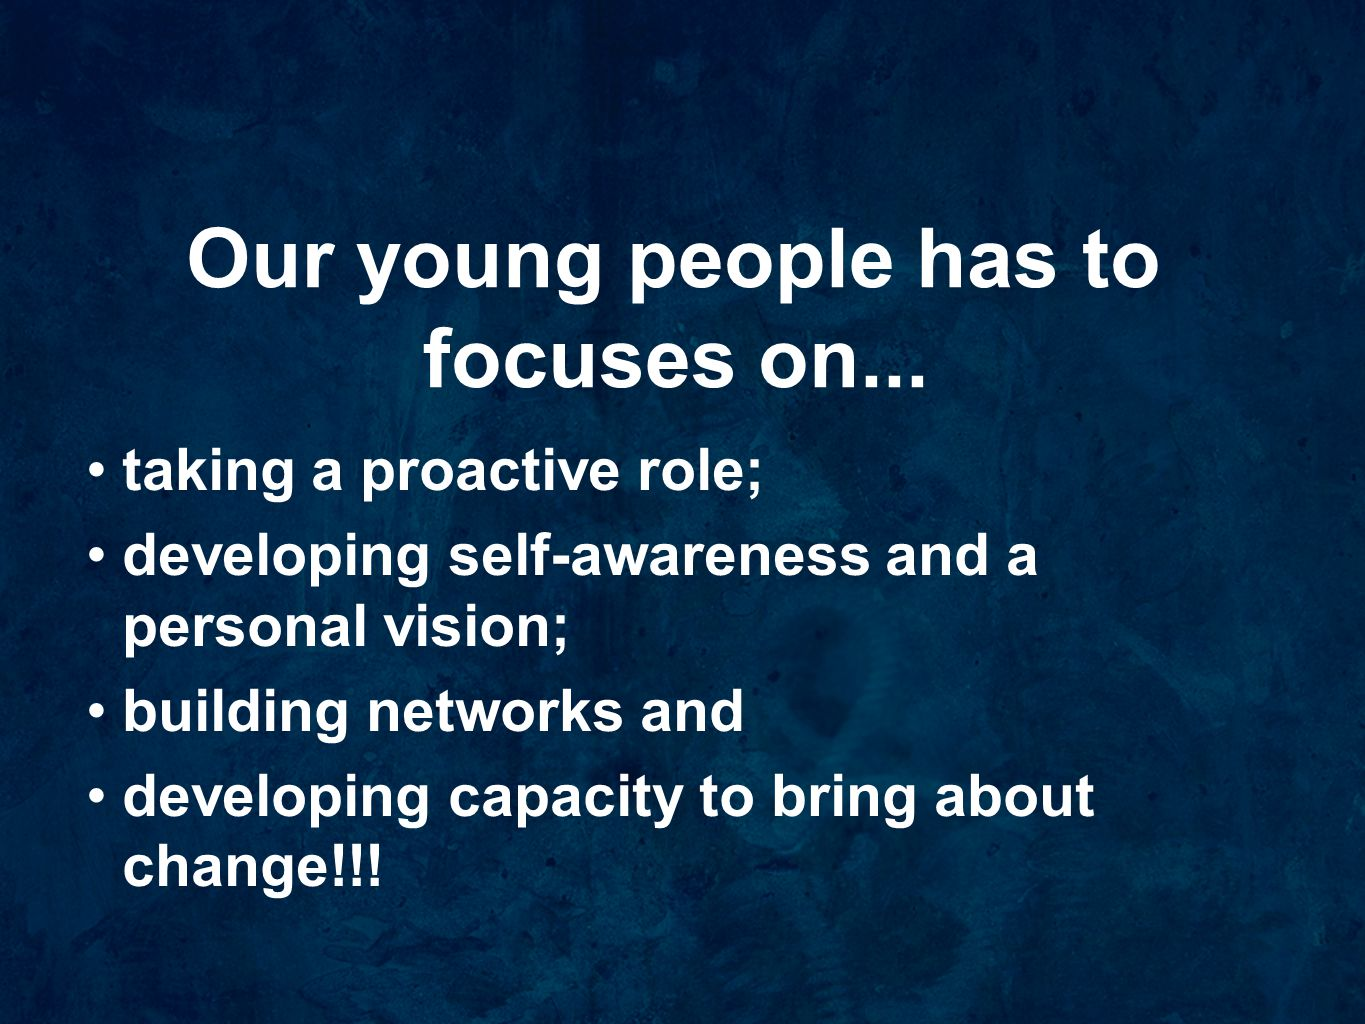 Our young people has to focuses on...